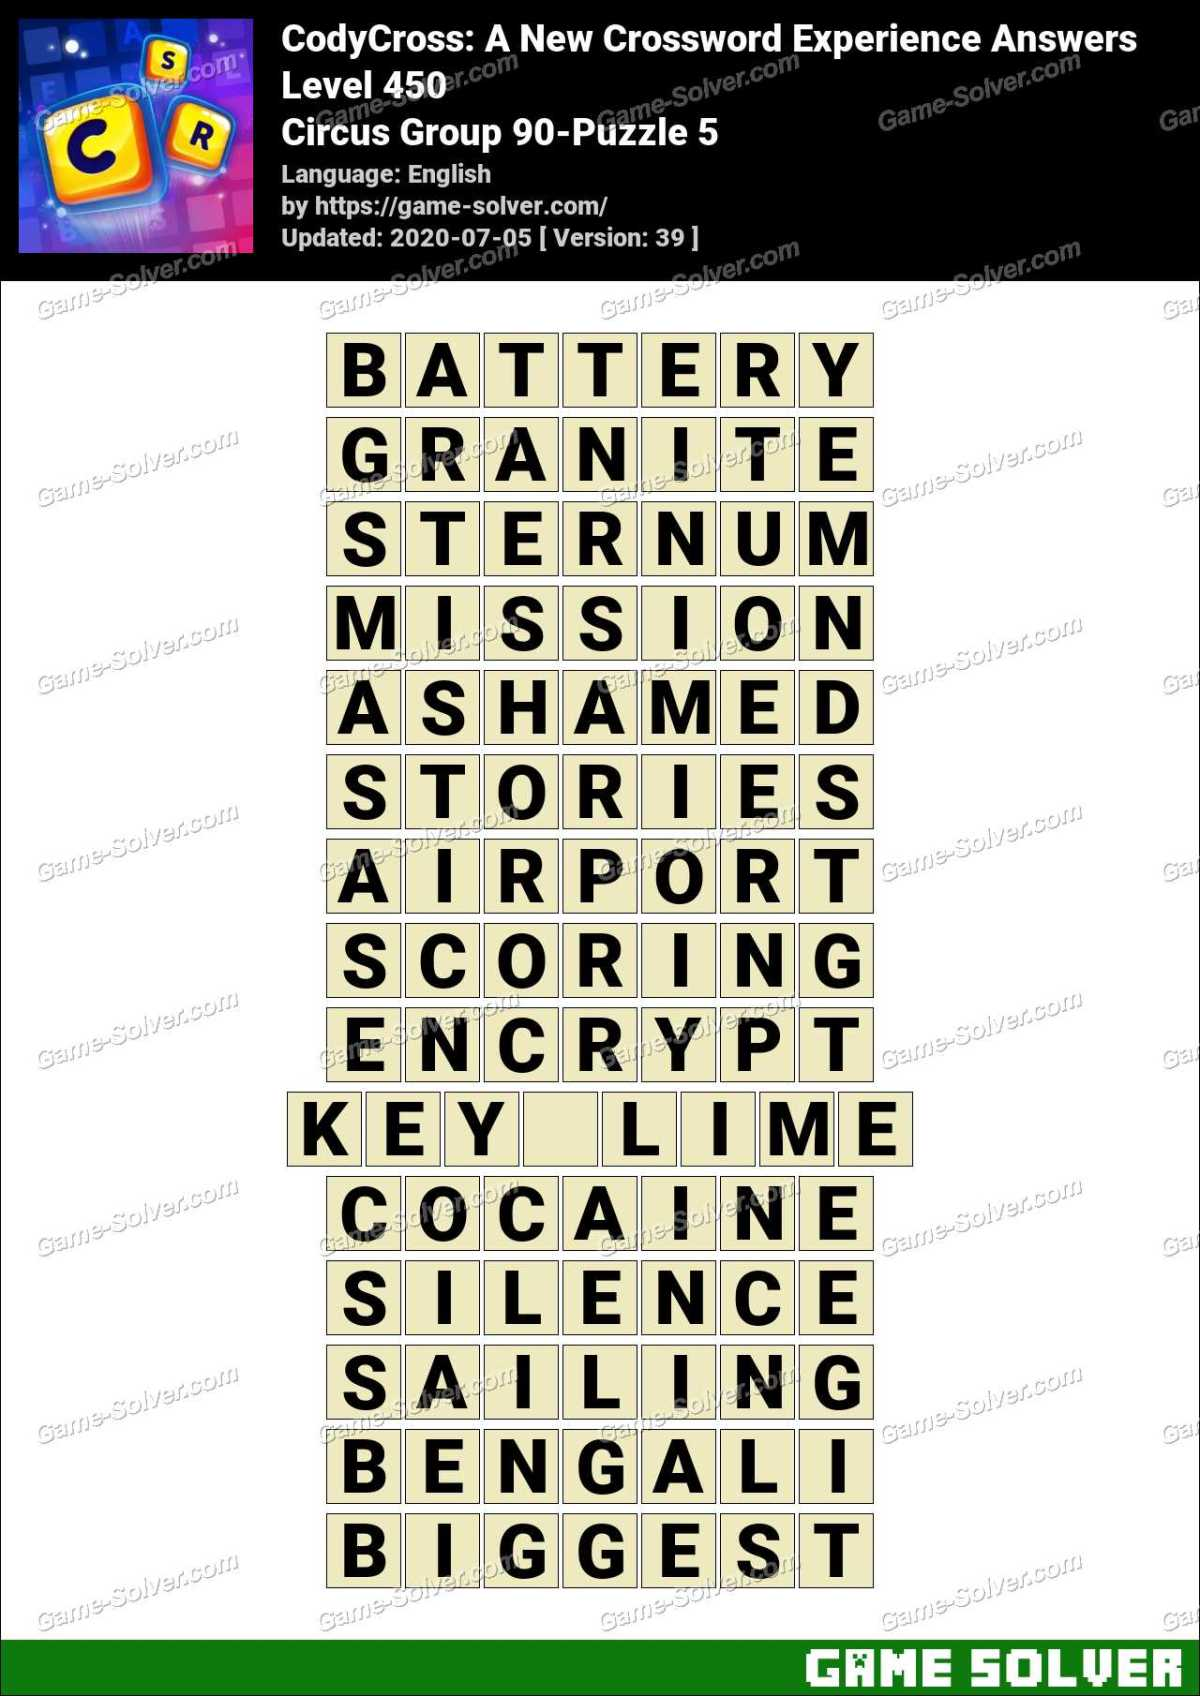 CodyCross Circus Group 90-Puzzle 5 Answers